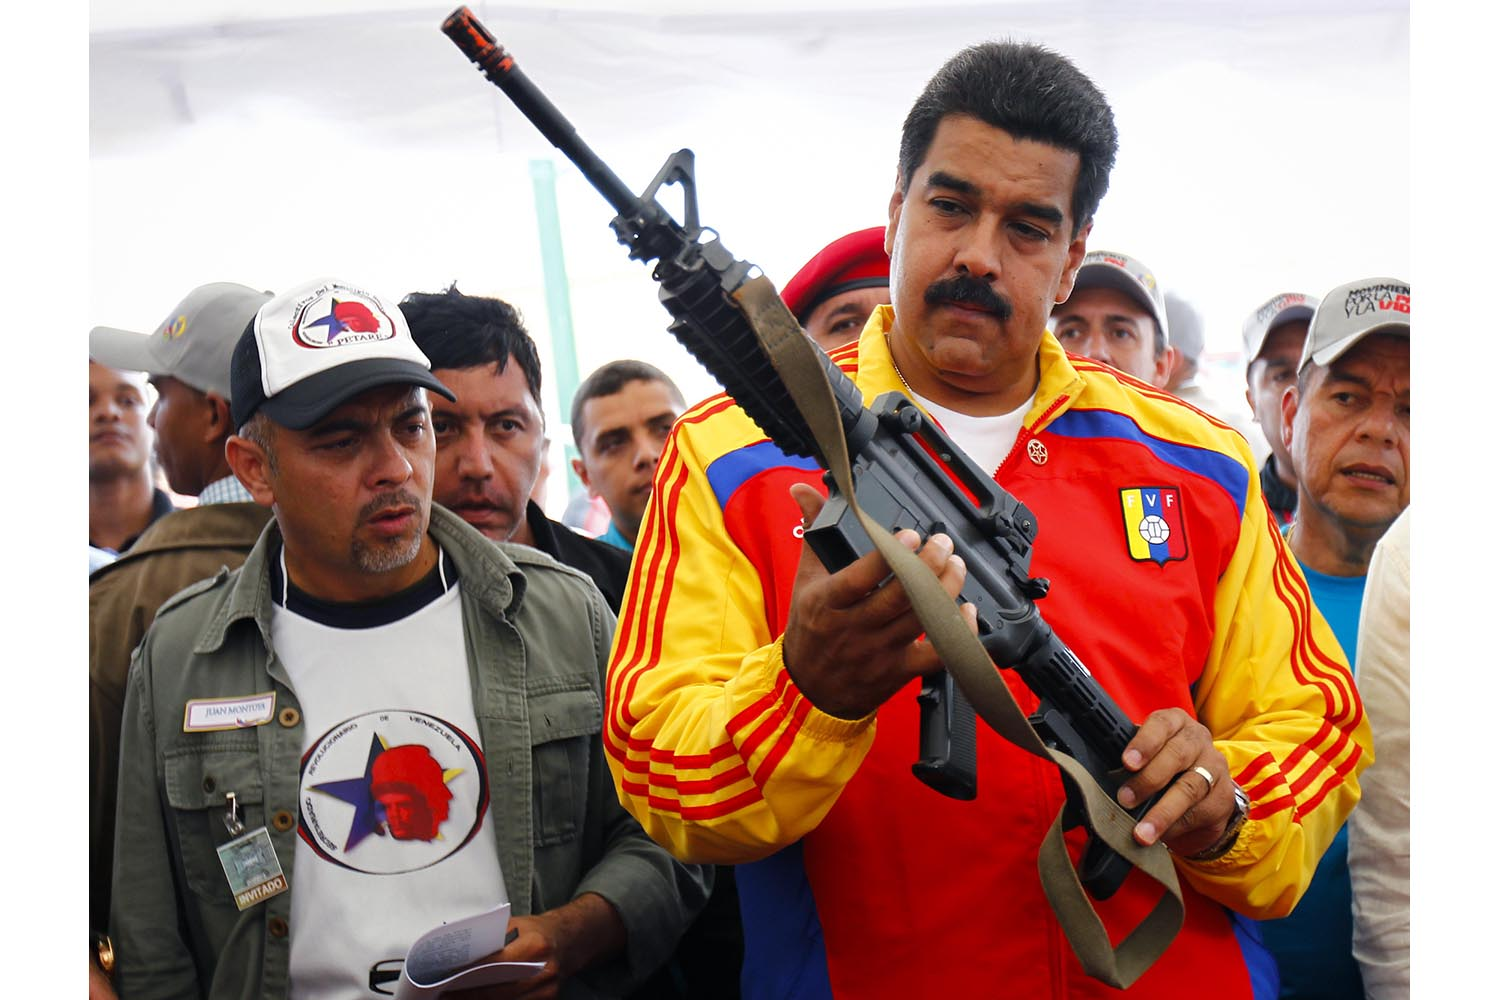 Venezuela's President Nicolas Maduro holds a weapon during a public destruction of confiscated weapons in Caracas August 8, 2013. REUTERS/Carlos Garcia Rawlins (VENEZUELA - Tags: POLITICS CRIME LAW) - RTX12EA9